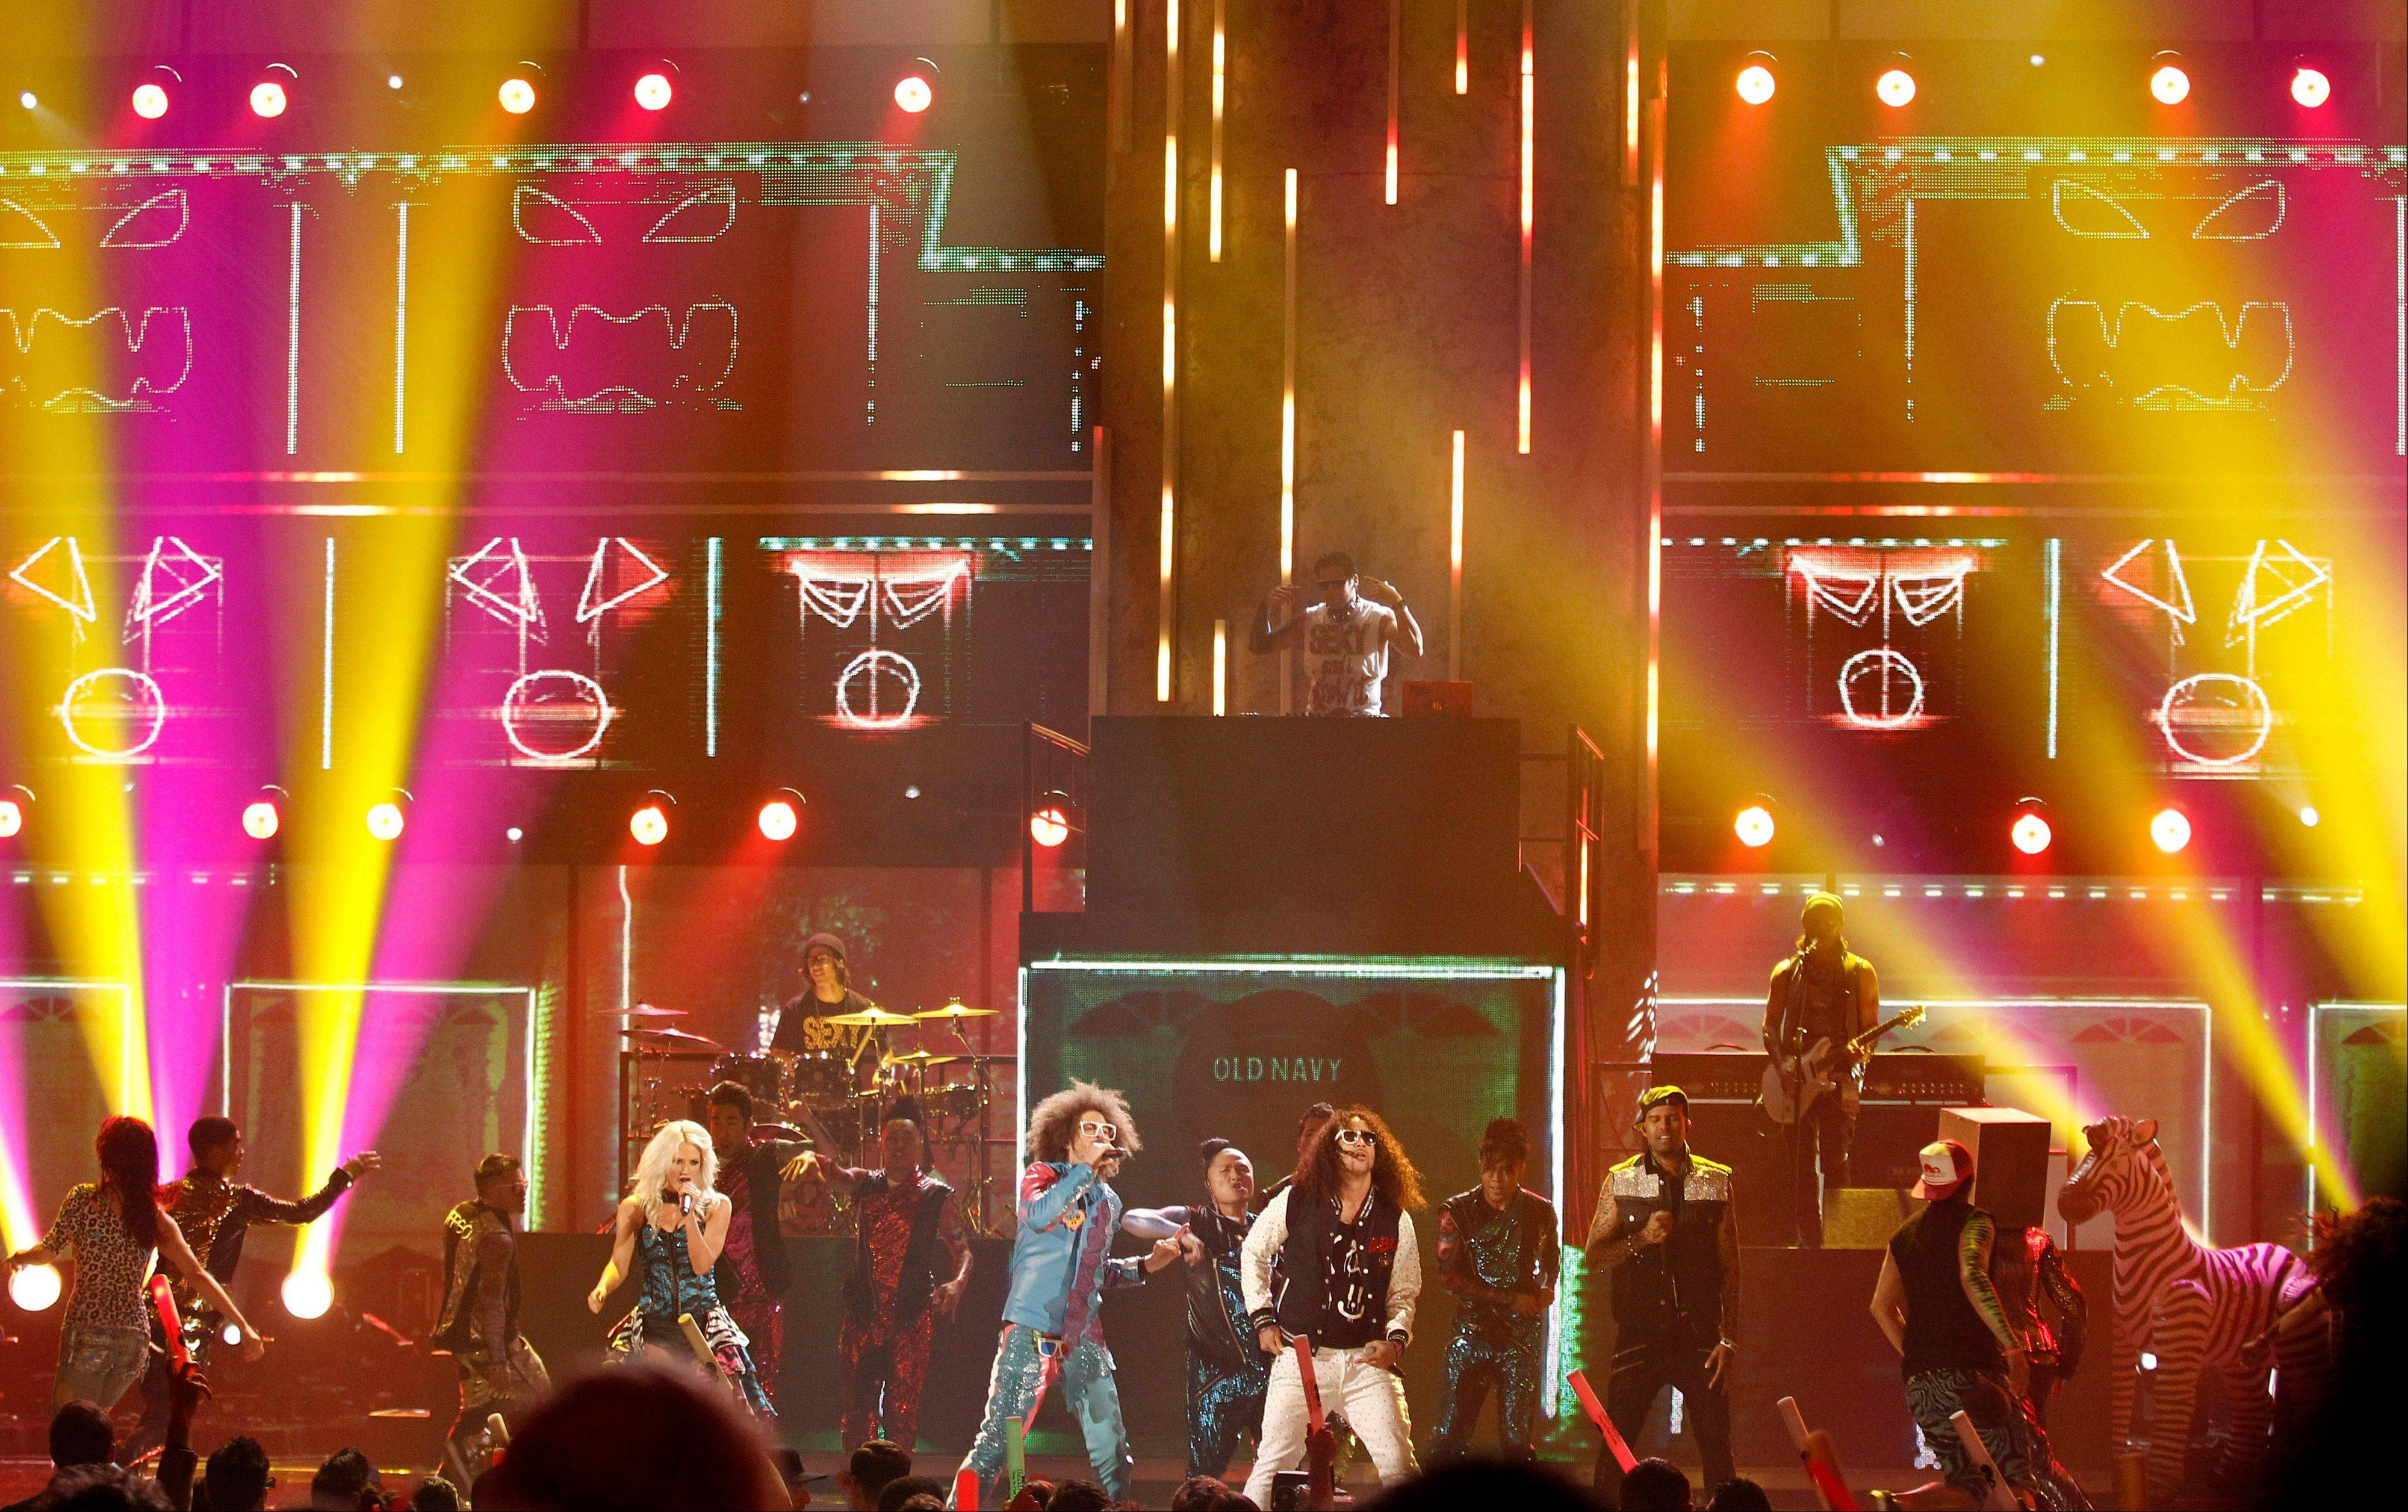 LMFAO performs at the 39th Annual American Music Awards on Sunday, Nov. 20, 2011 in Los Angeles.